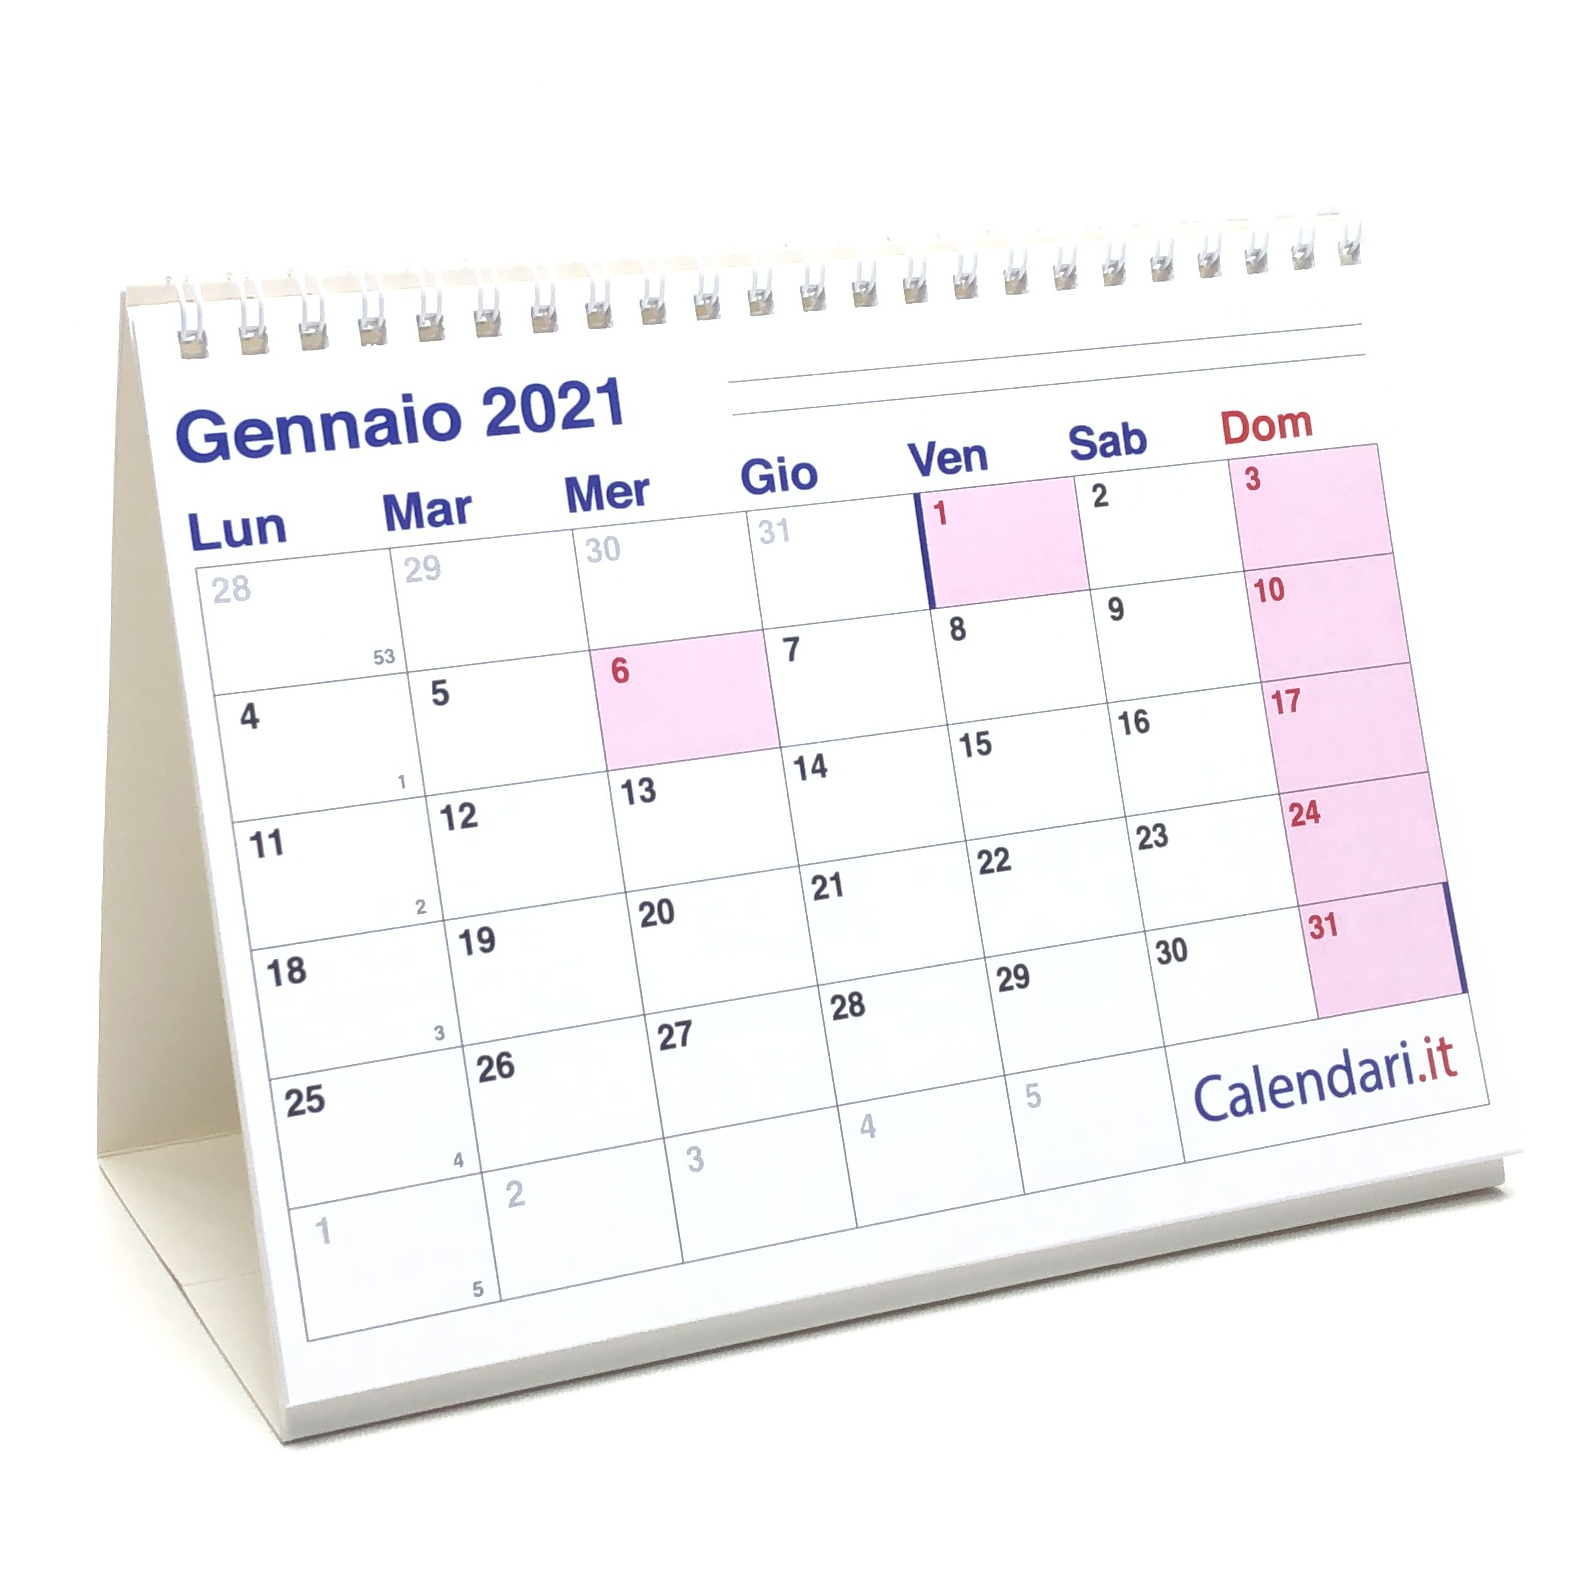 Calendario 2021 Ufficio Calendario 2021 tavolo a caselle 20x15 cm   Cartaigienica.it